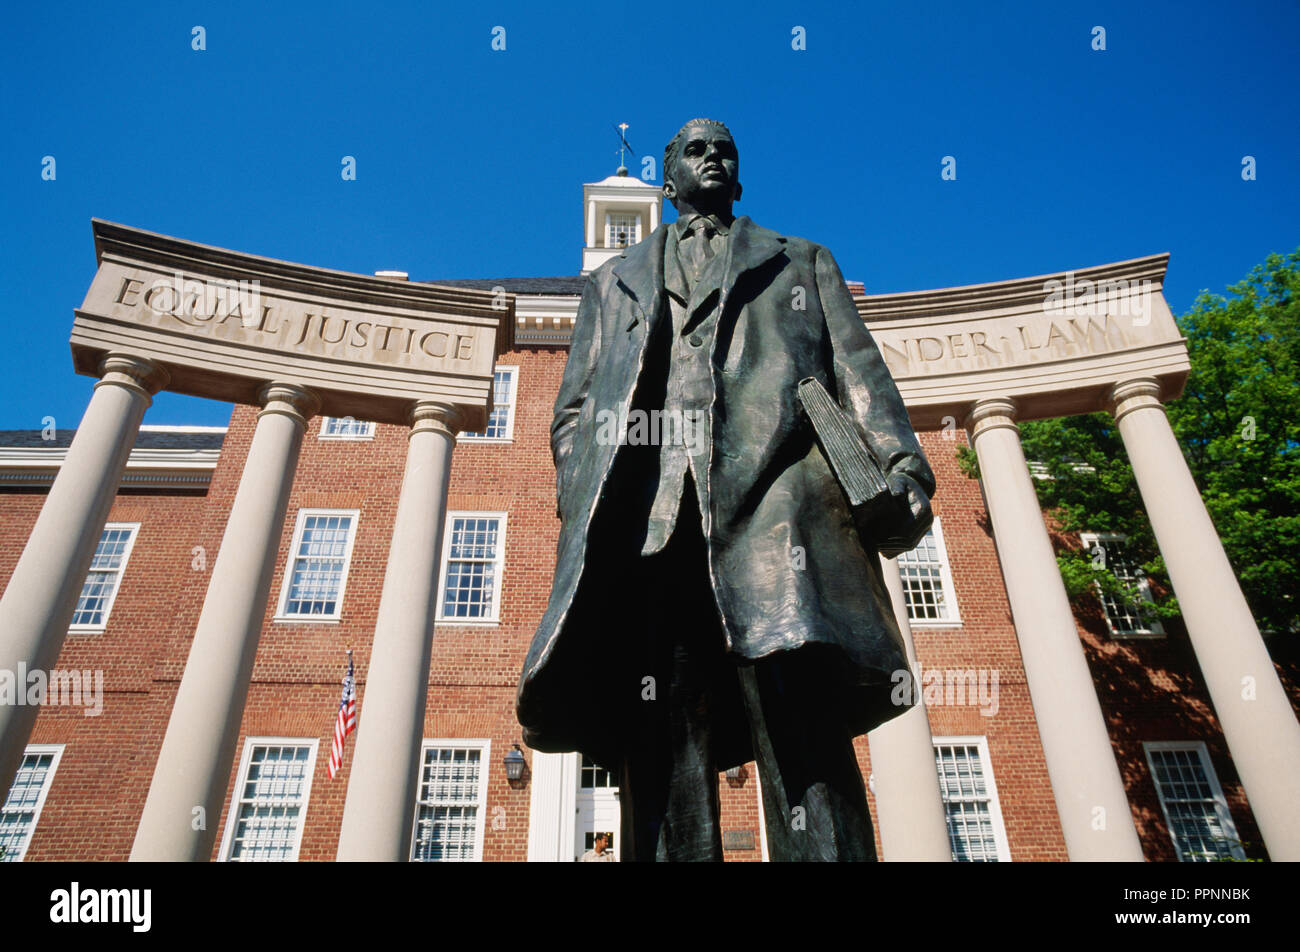 Thurgood Marshall Memorial Statue to the first African-American Supreme Court Justice, Annapolis, MD - Stock Image